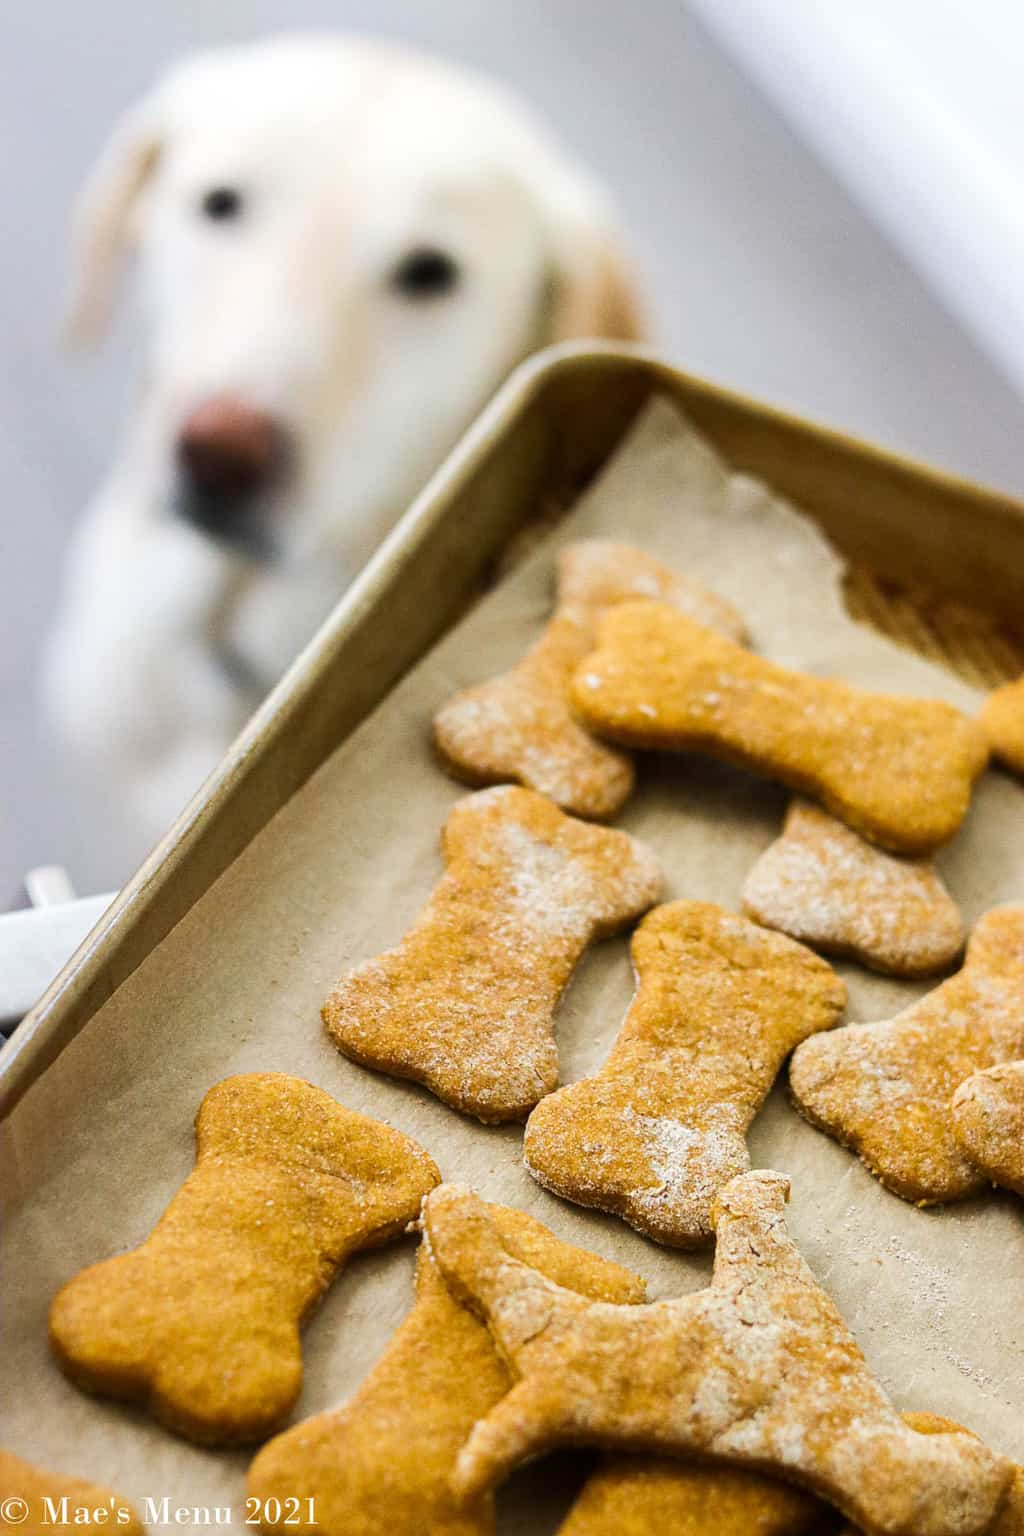 a tray of dog treats with a dog staring at them in the background